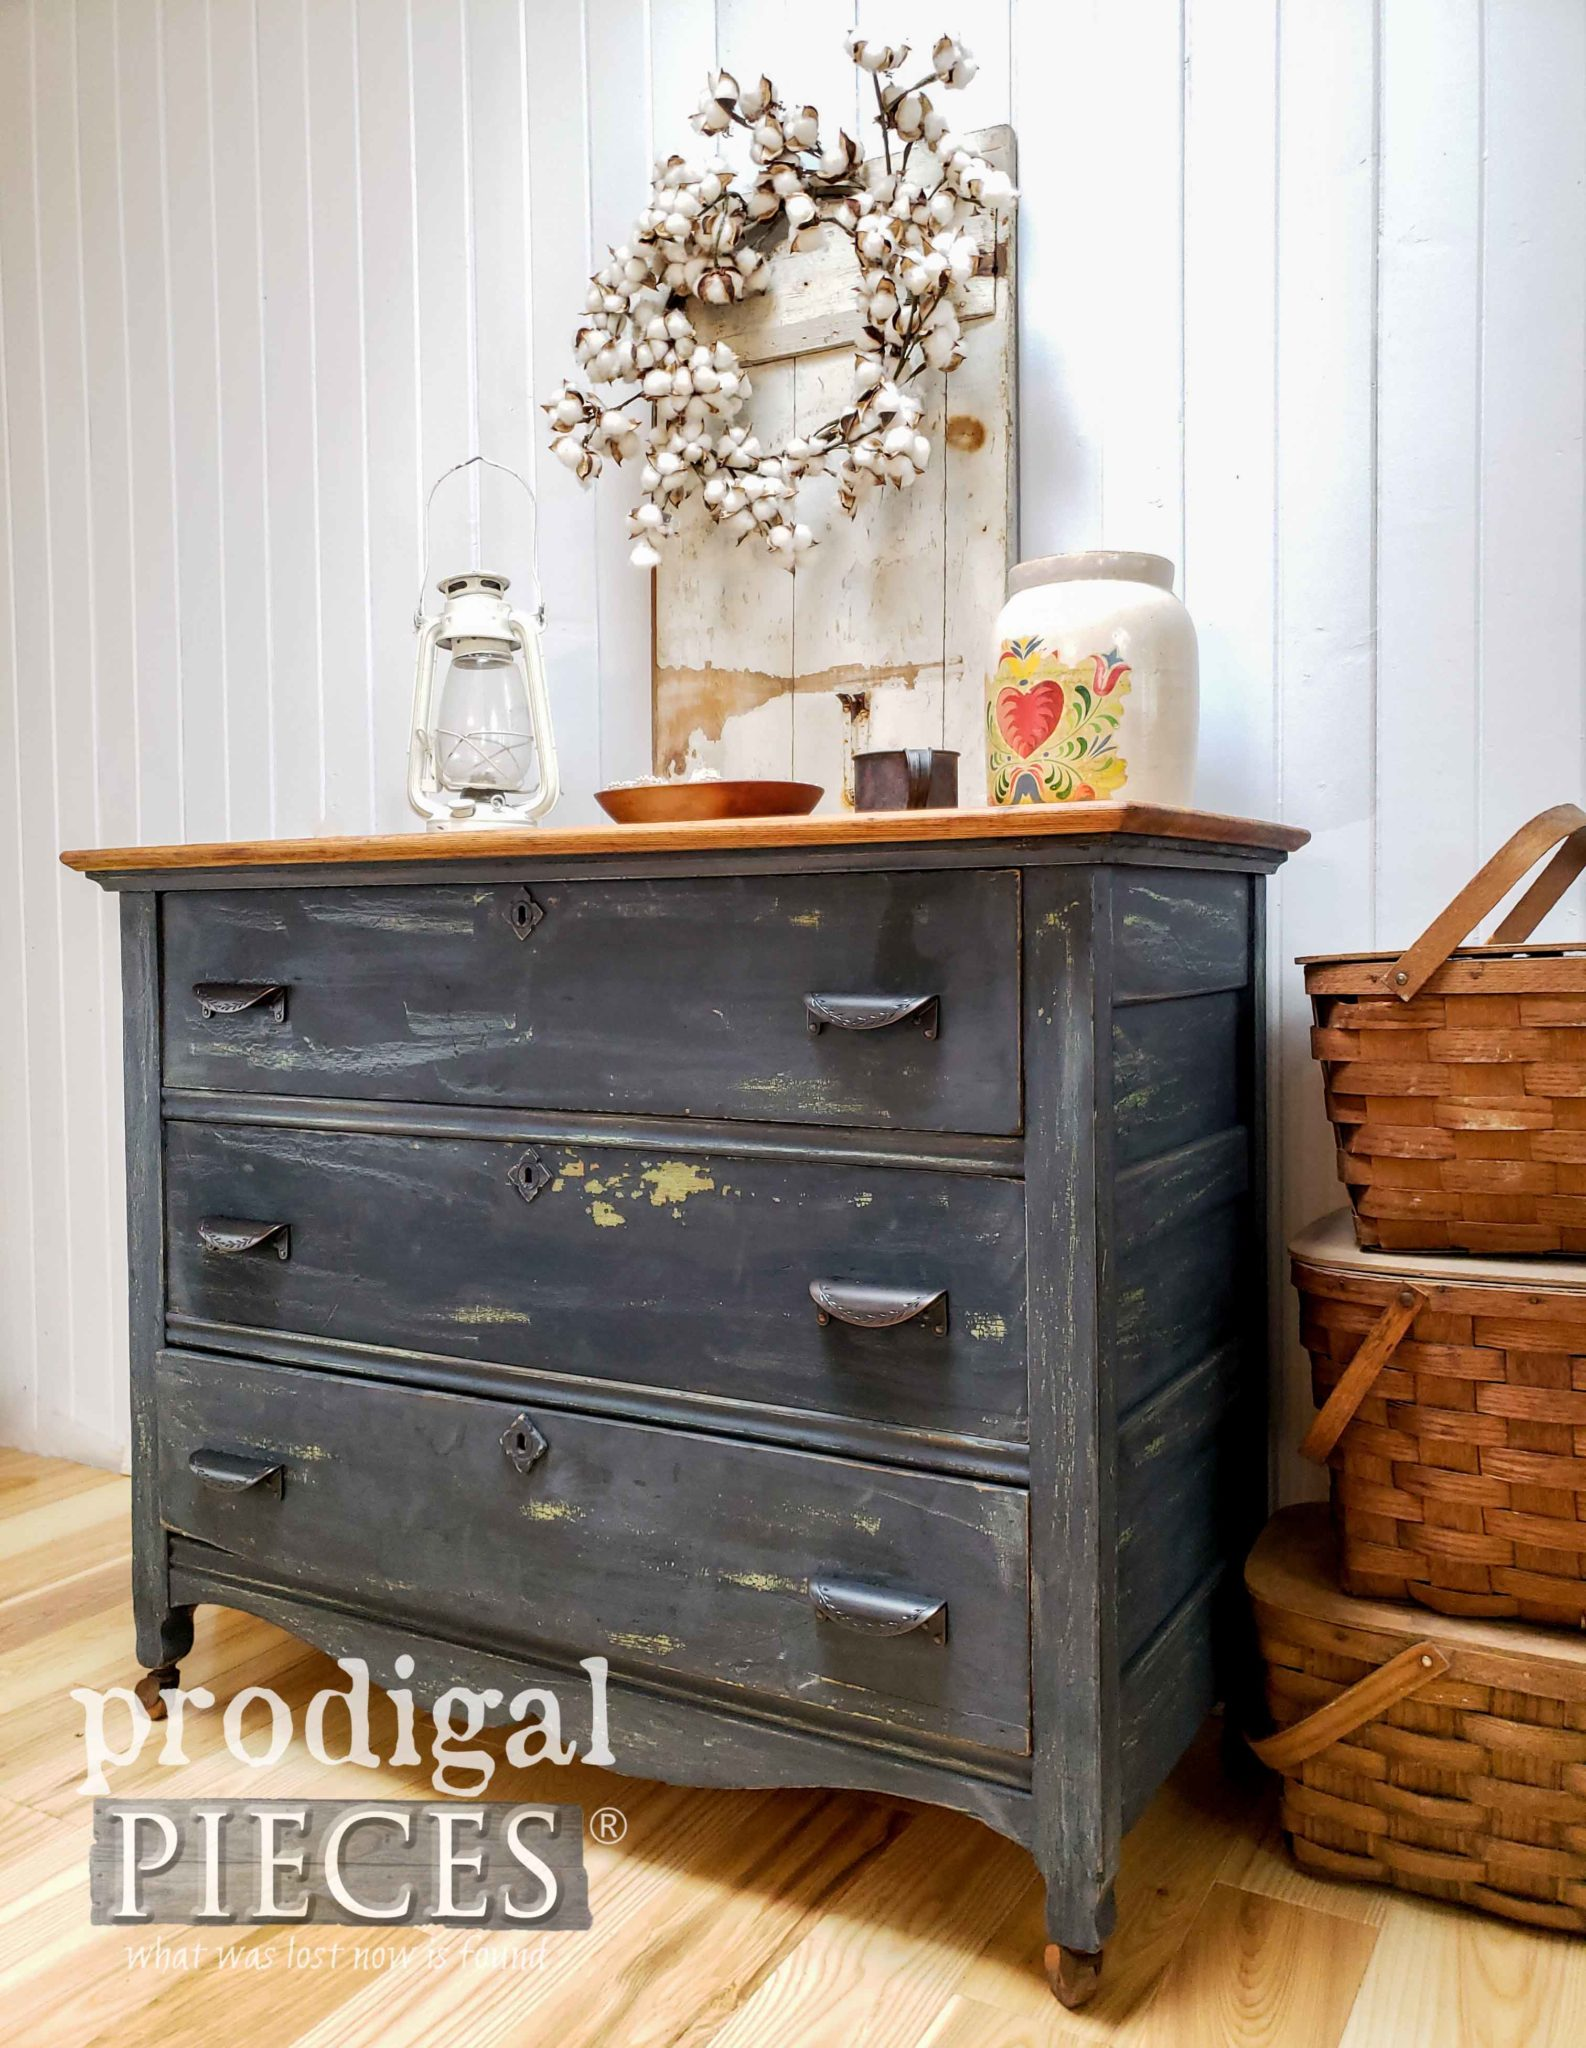 Chippy Blue Farmhouse Chest of Drawers Refinished by Larissa of Prodigal Pieces | prodigalpieces.com #prodigalpieces #furniture #diy #milkpaint #farmhouse #home #homedecor